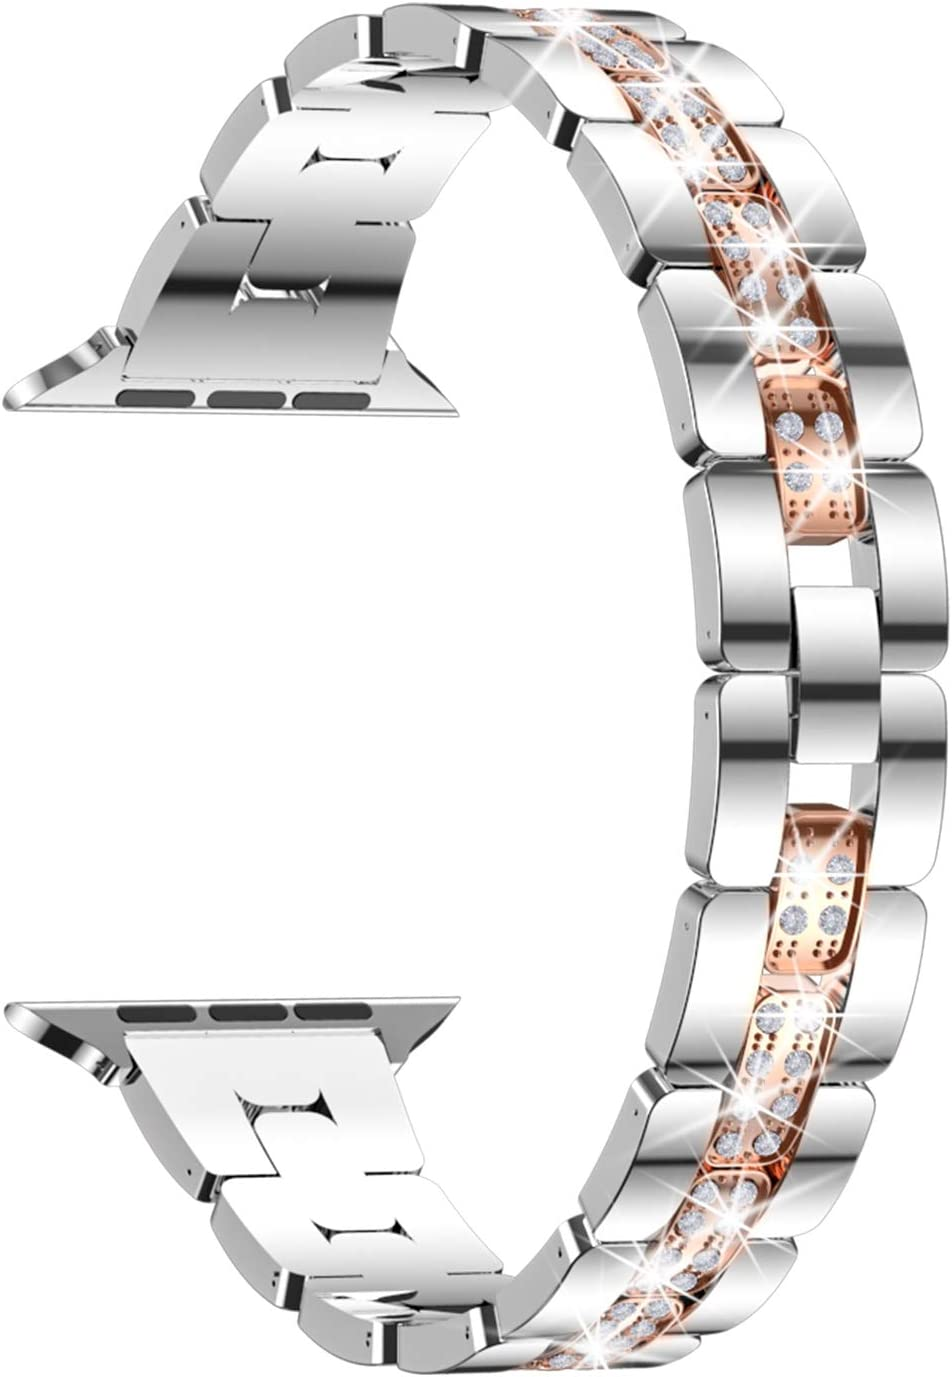 wootfairy Bling Diamond Apple Watch Bands Compatible with iWatch Bands 38mm 40mm Watch Series 6 5 4 3 2 1 Women Dressy Jewelry Stainless Steel Wristband Bracelets Strap, Silver&Rose Gold, 38mm/40mm